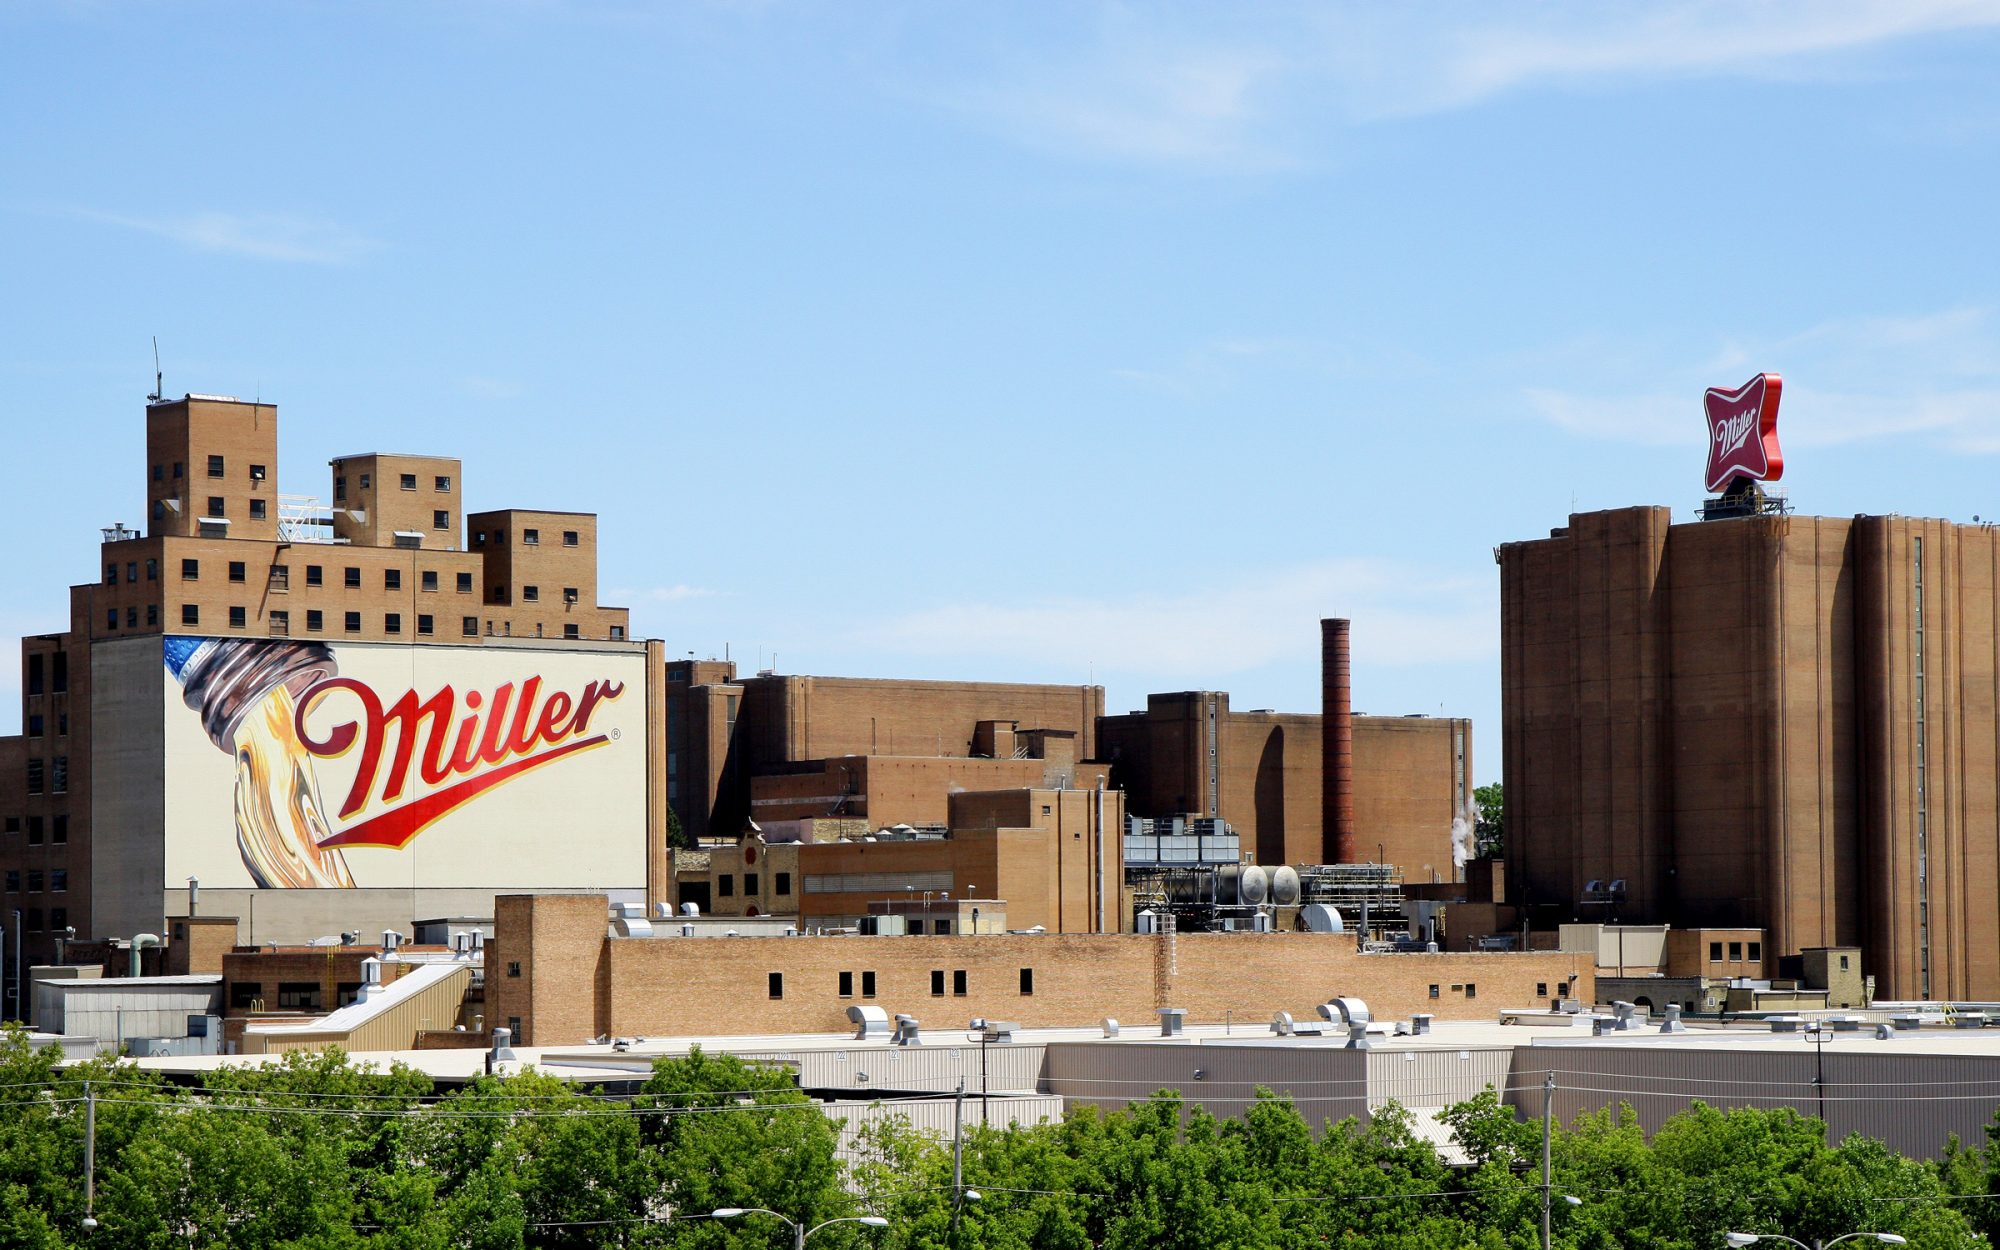 All About the Miller Brewery Tour